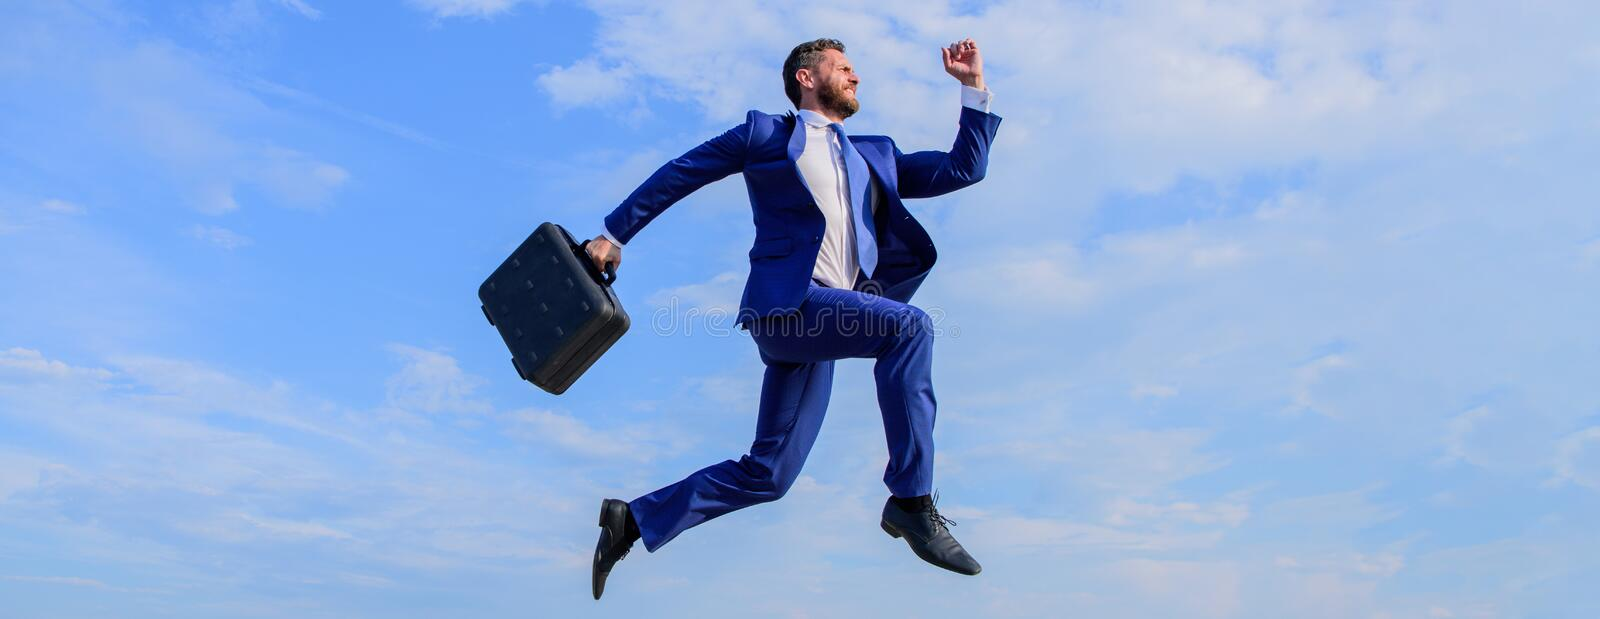 Success in business demands supernatural efforts. Businessman with briefcase jump high in motion forward. Businessman royalty free stock photos